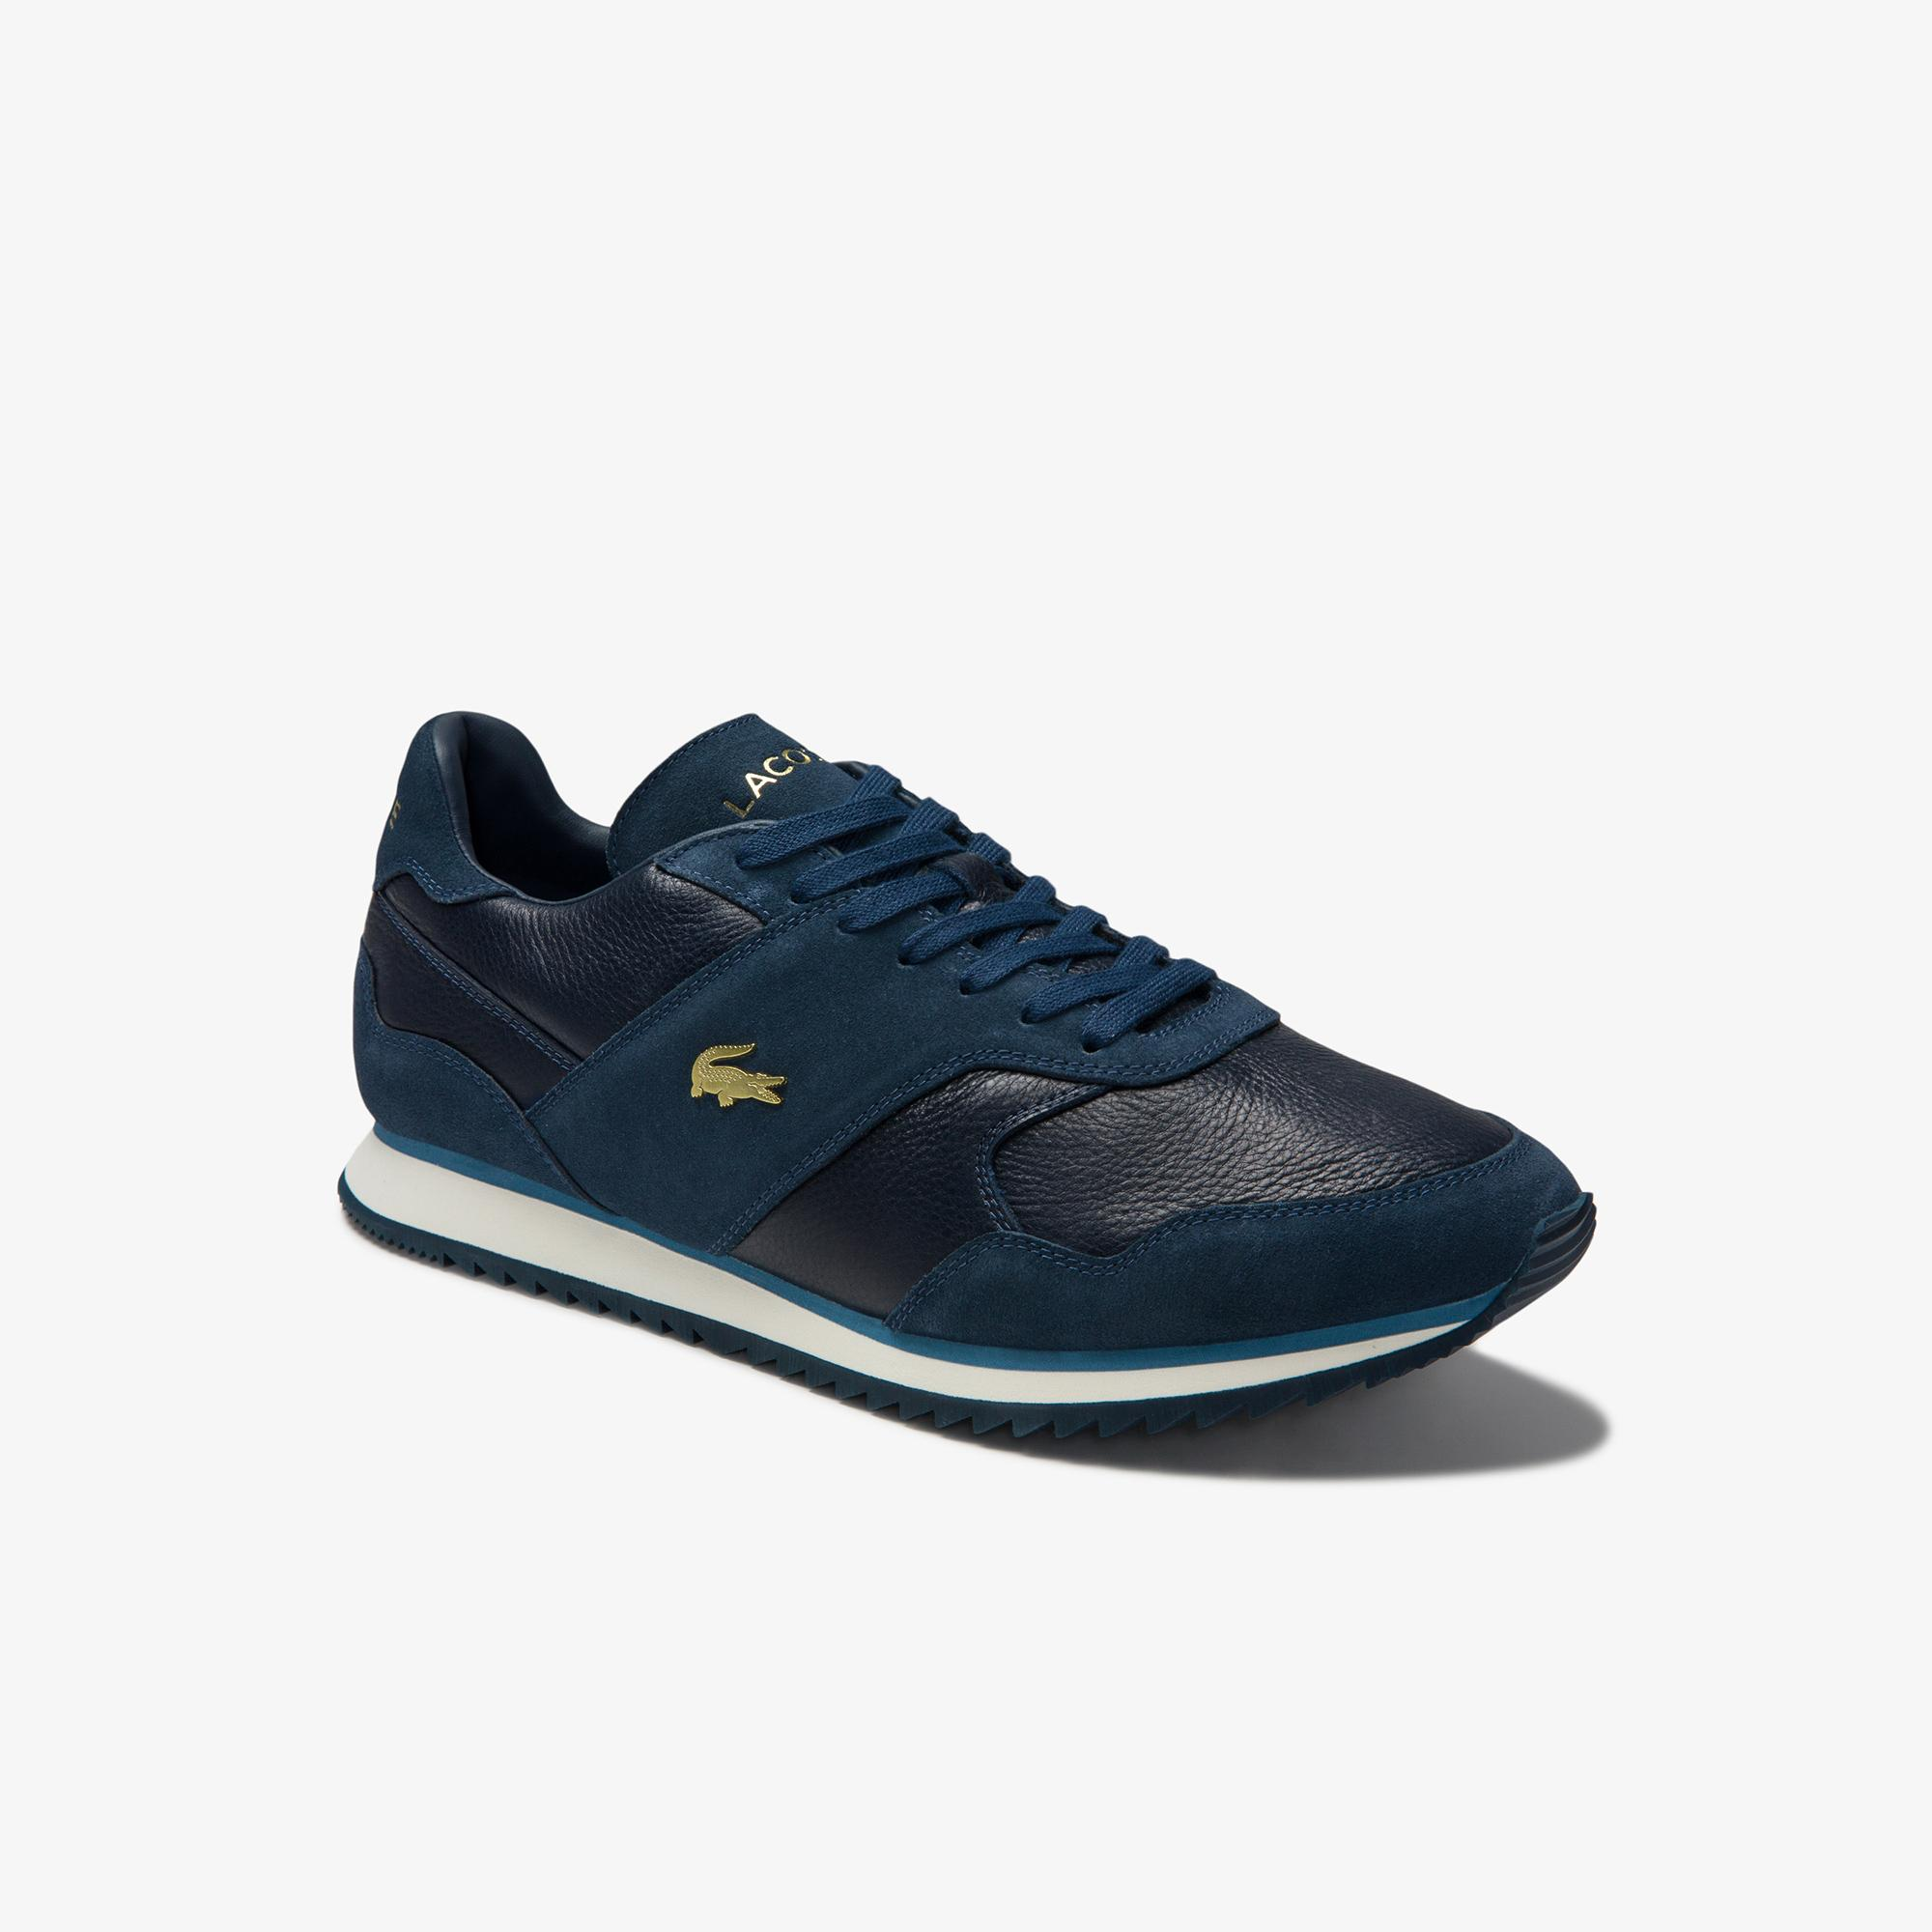 Lacoste Men's Aesthet Luxe Leather Sneakers